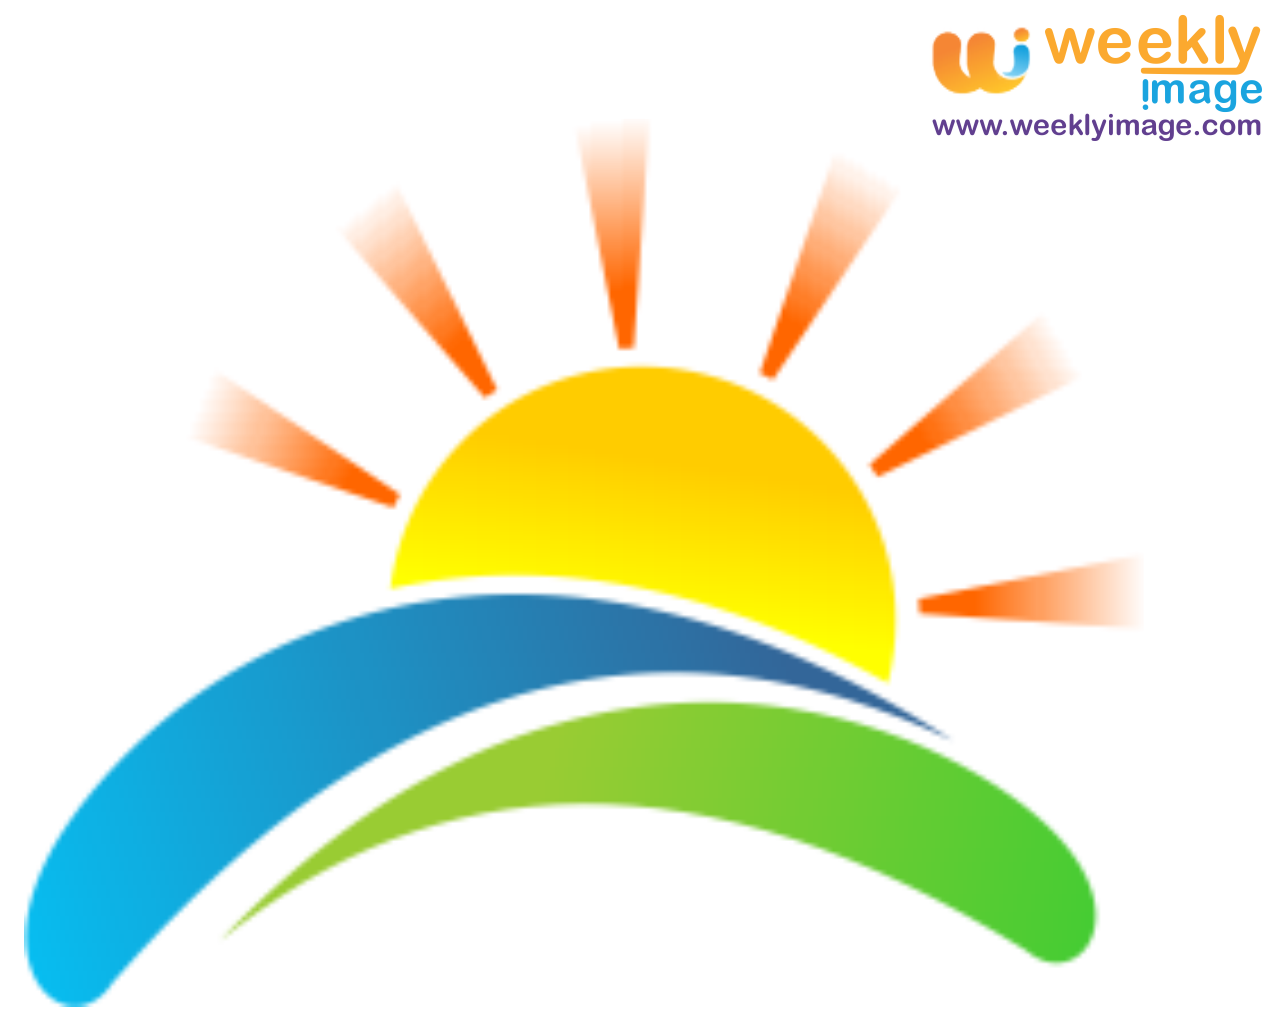 Sunset clipart sunrise breakfast. Vector logo picture perfect